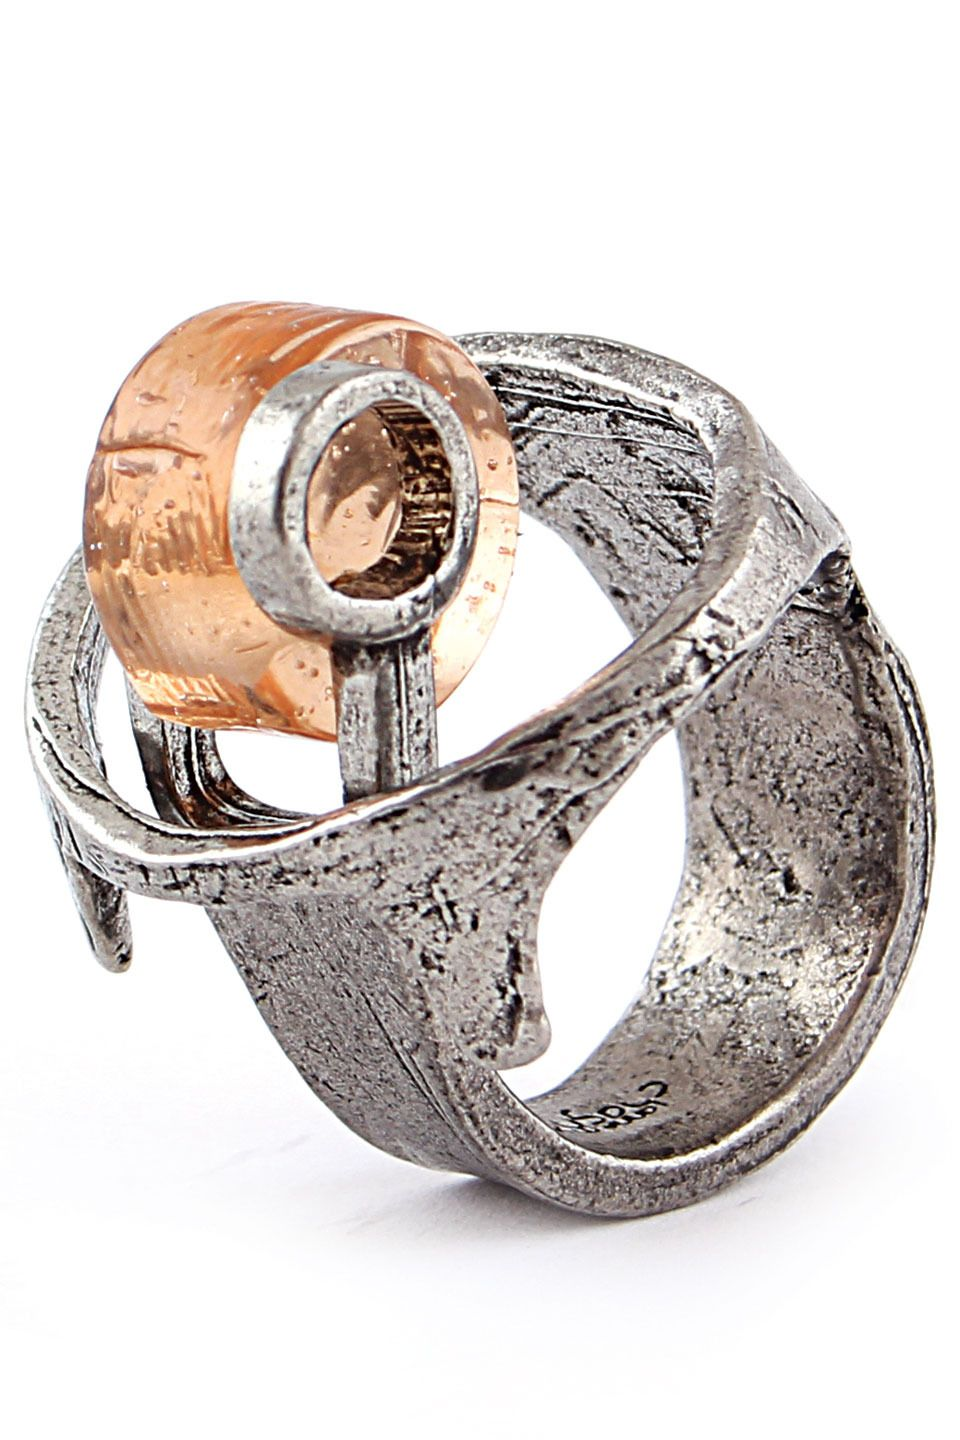 wood rings napkin rhino pewter ring